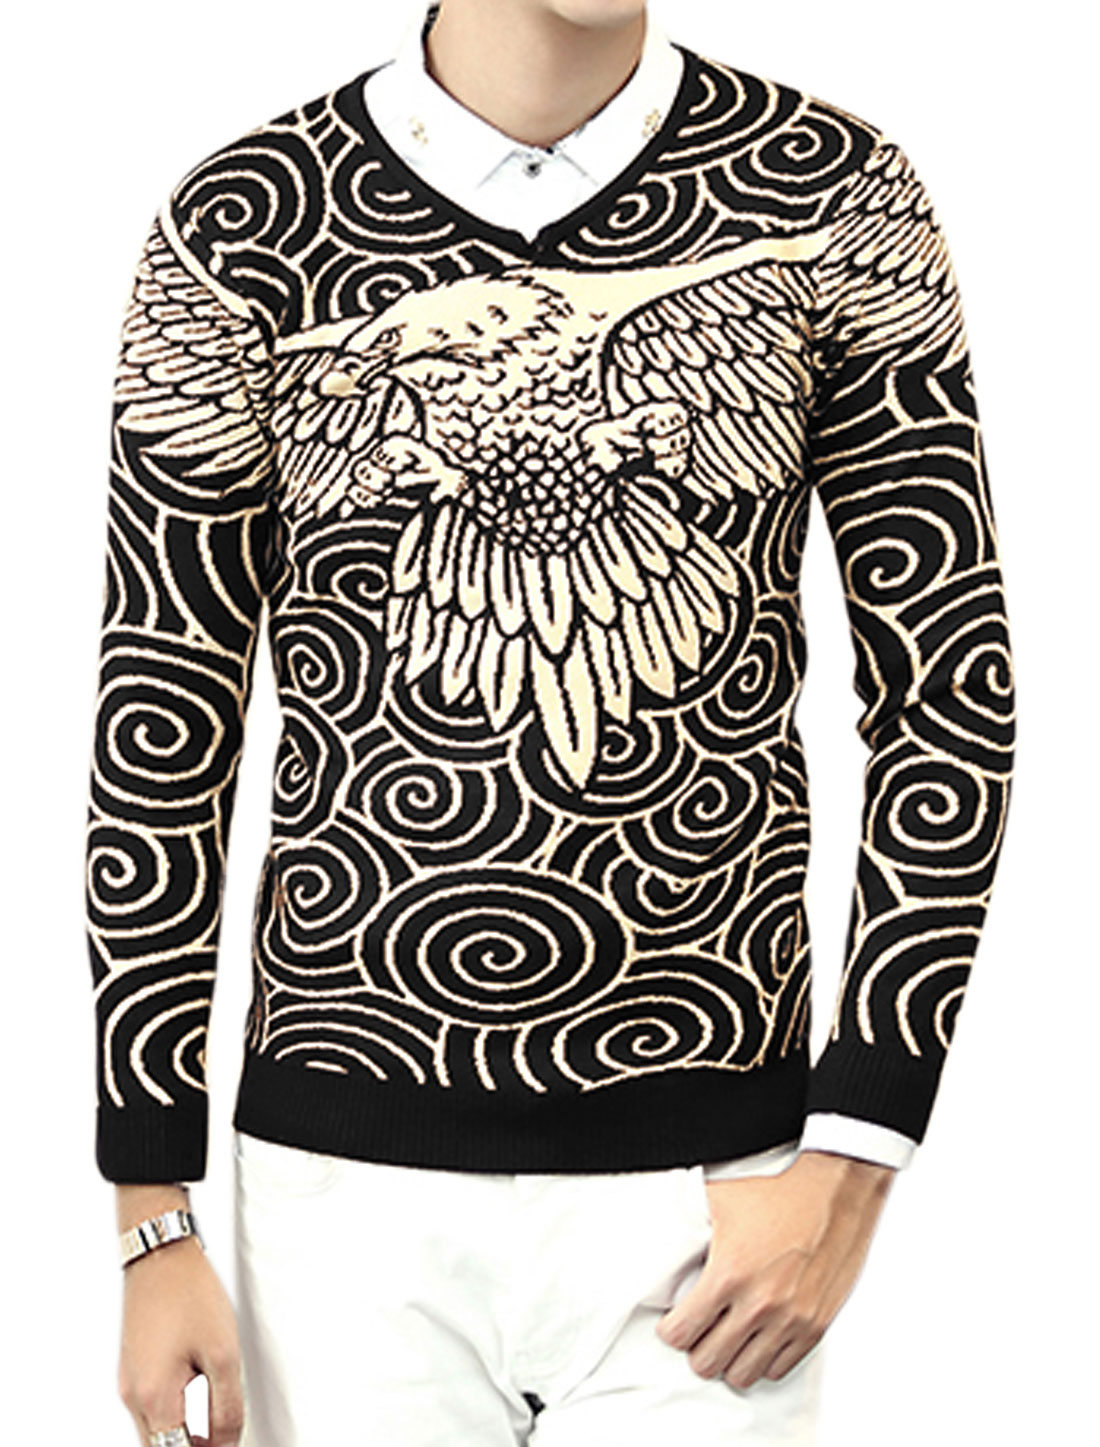 Men V Neck Eagle Twirls Slim Fit Knit Shirt Black M